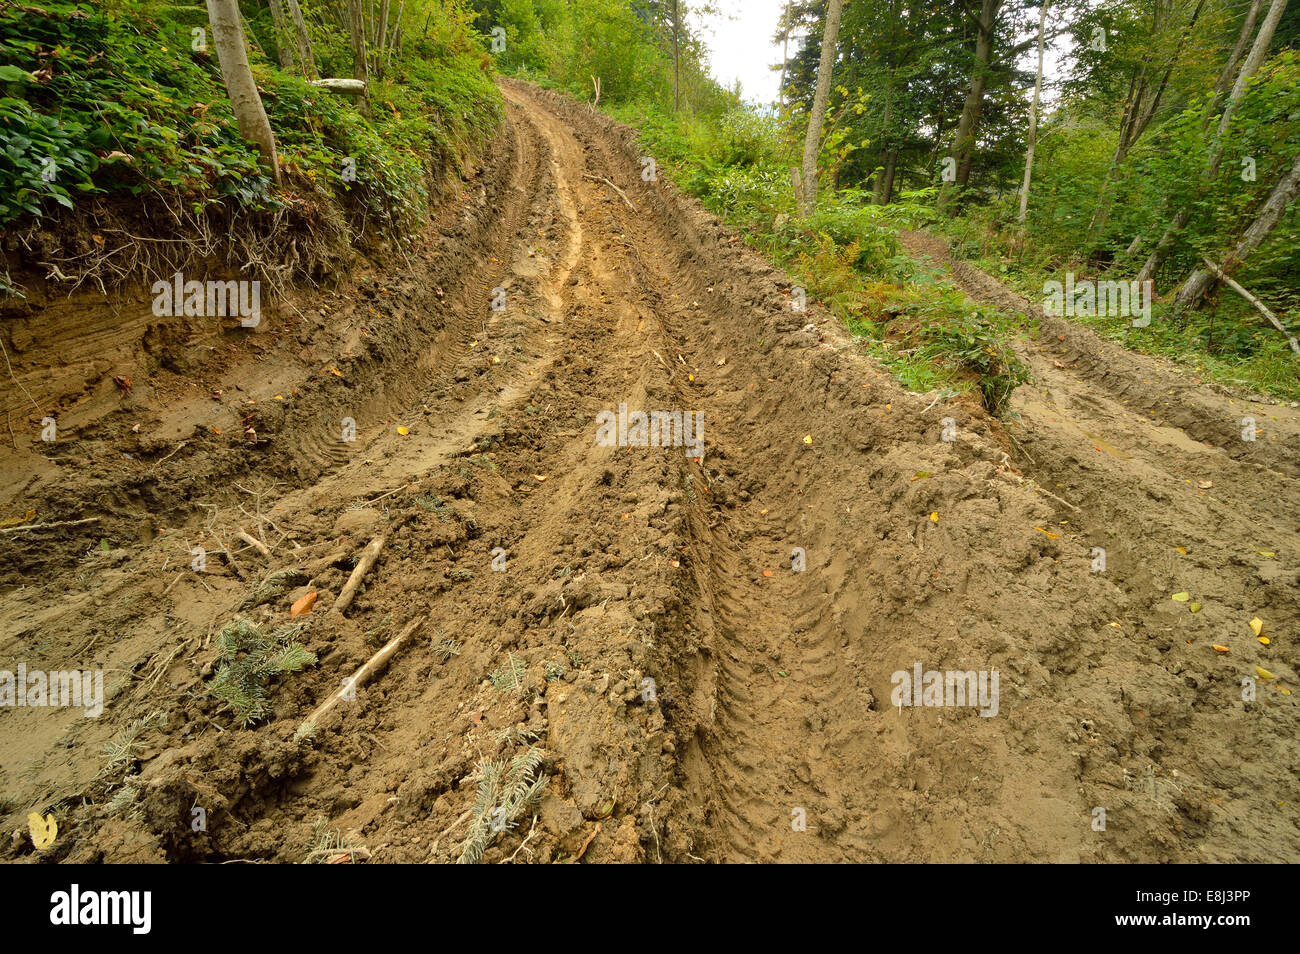 Extreme off road 4x4 muddy way through European forest. Poland. - Stock Image